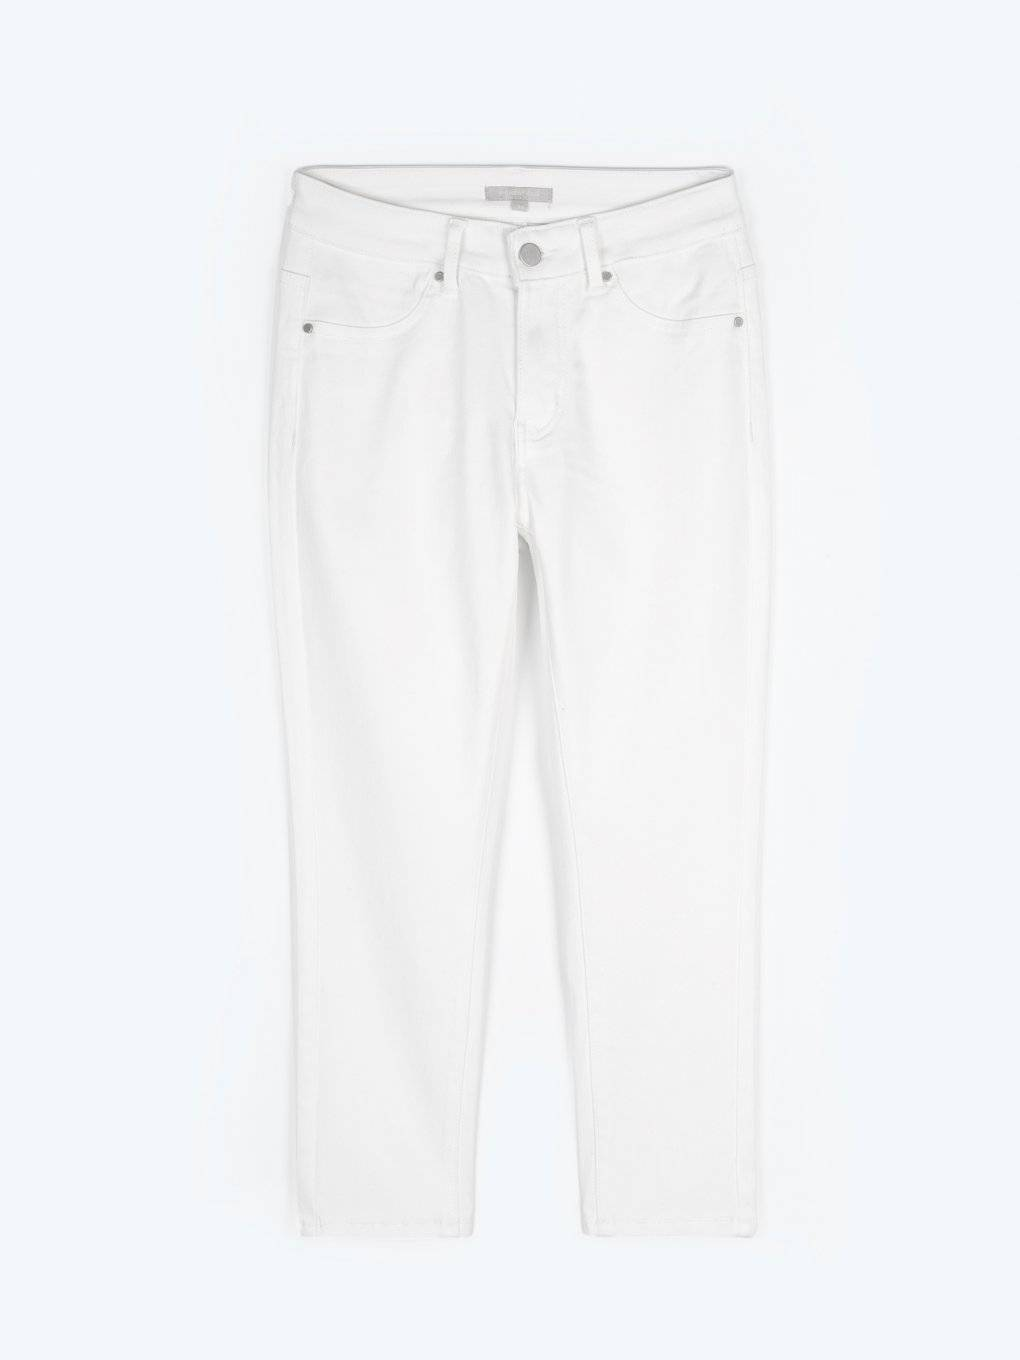 3/4 stretchy soft trousers